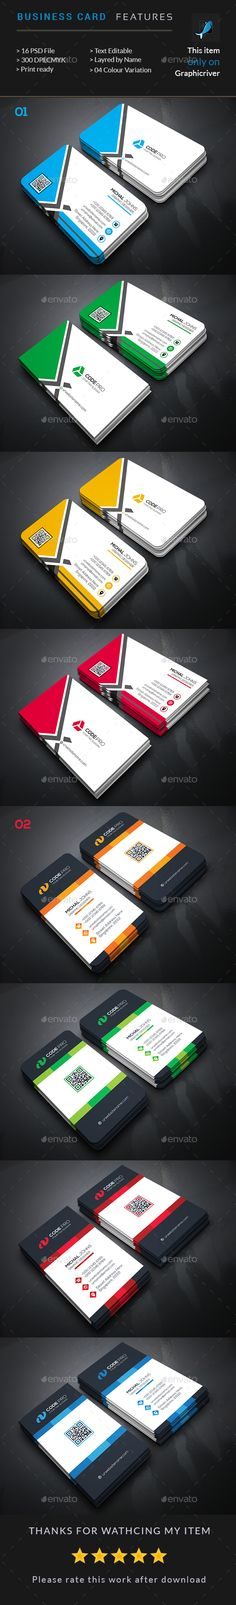 Corporate Business Card Bundle (2 In 1) - Business Cards Print Templates Download here : http://graphicriver.net/item/corporate-business-card-bundle-2-in-1/16799712?s_rank=39&ref=Al-fatih